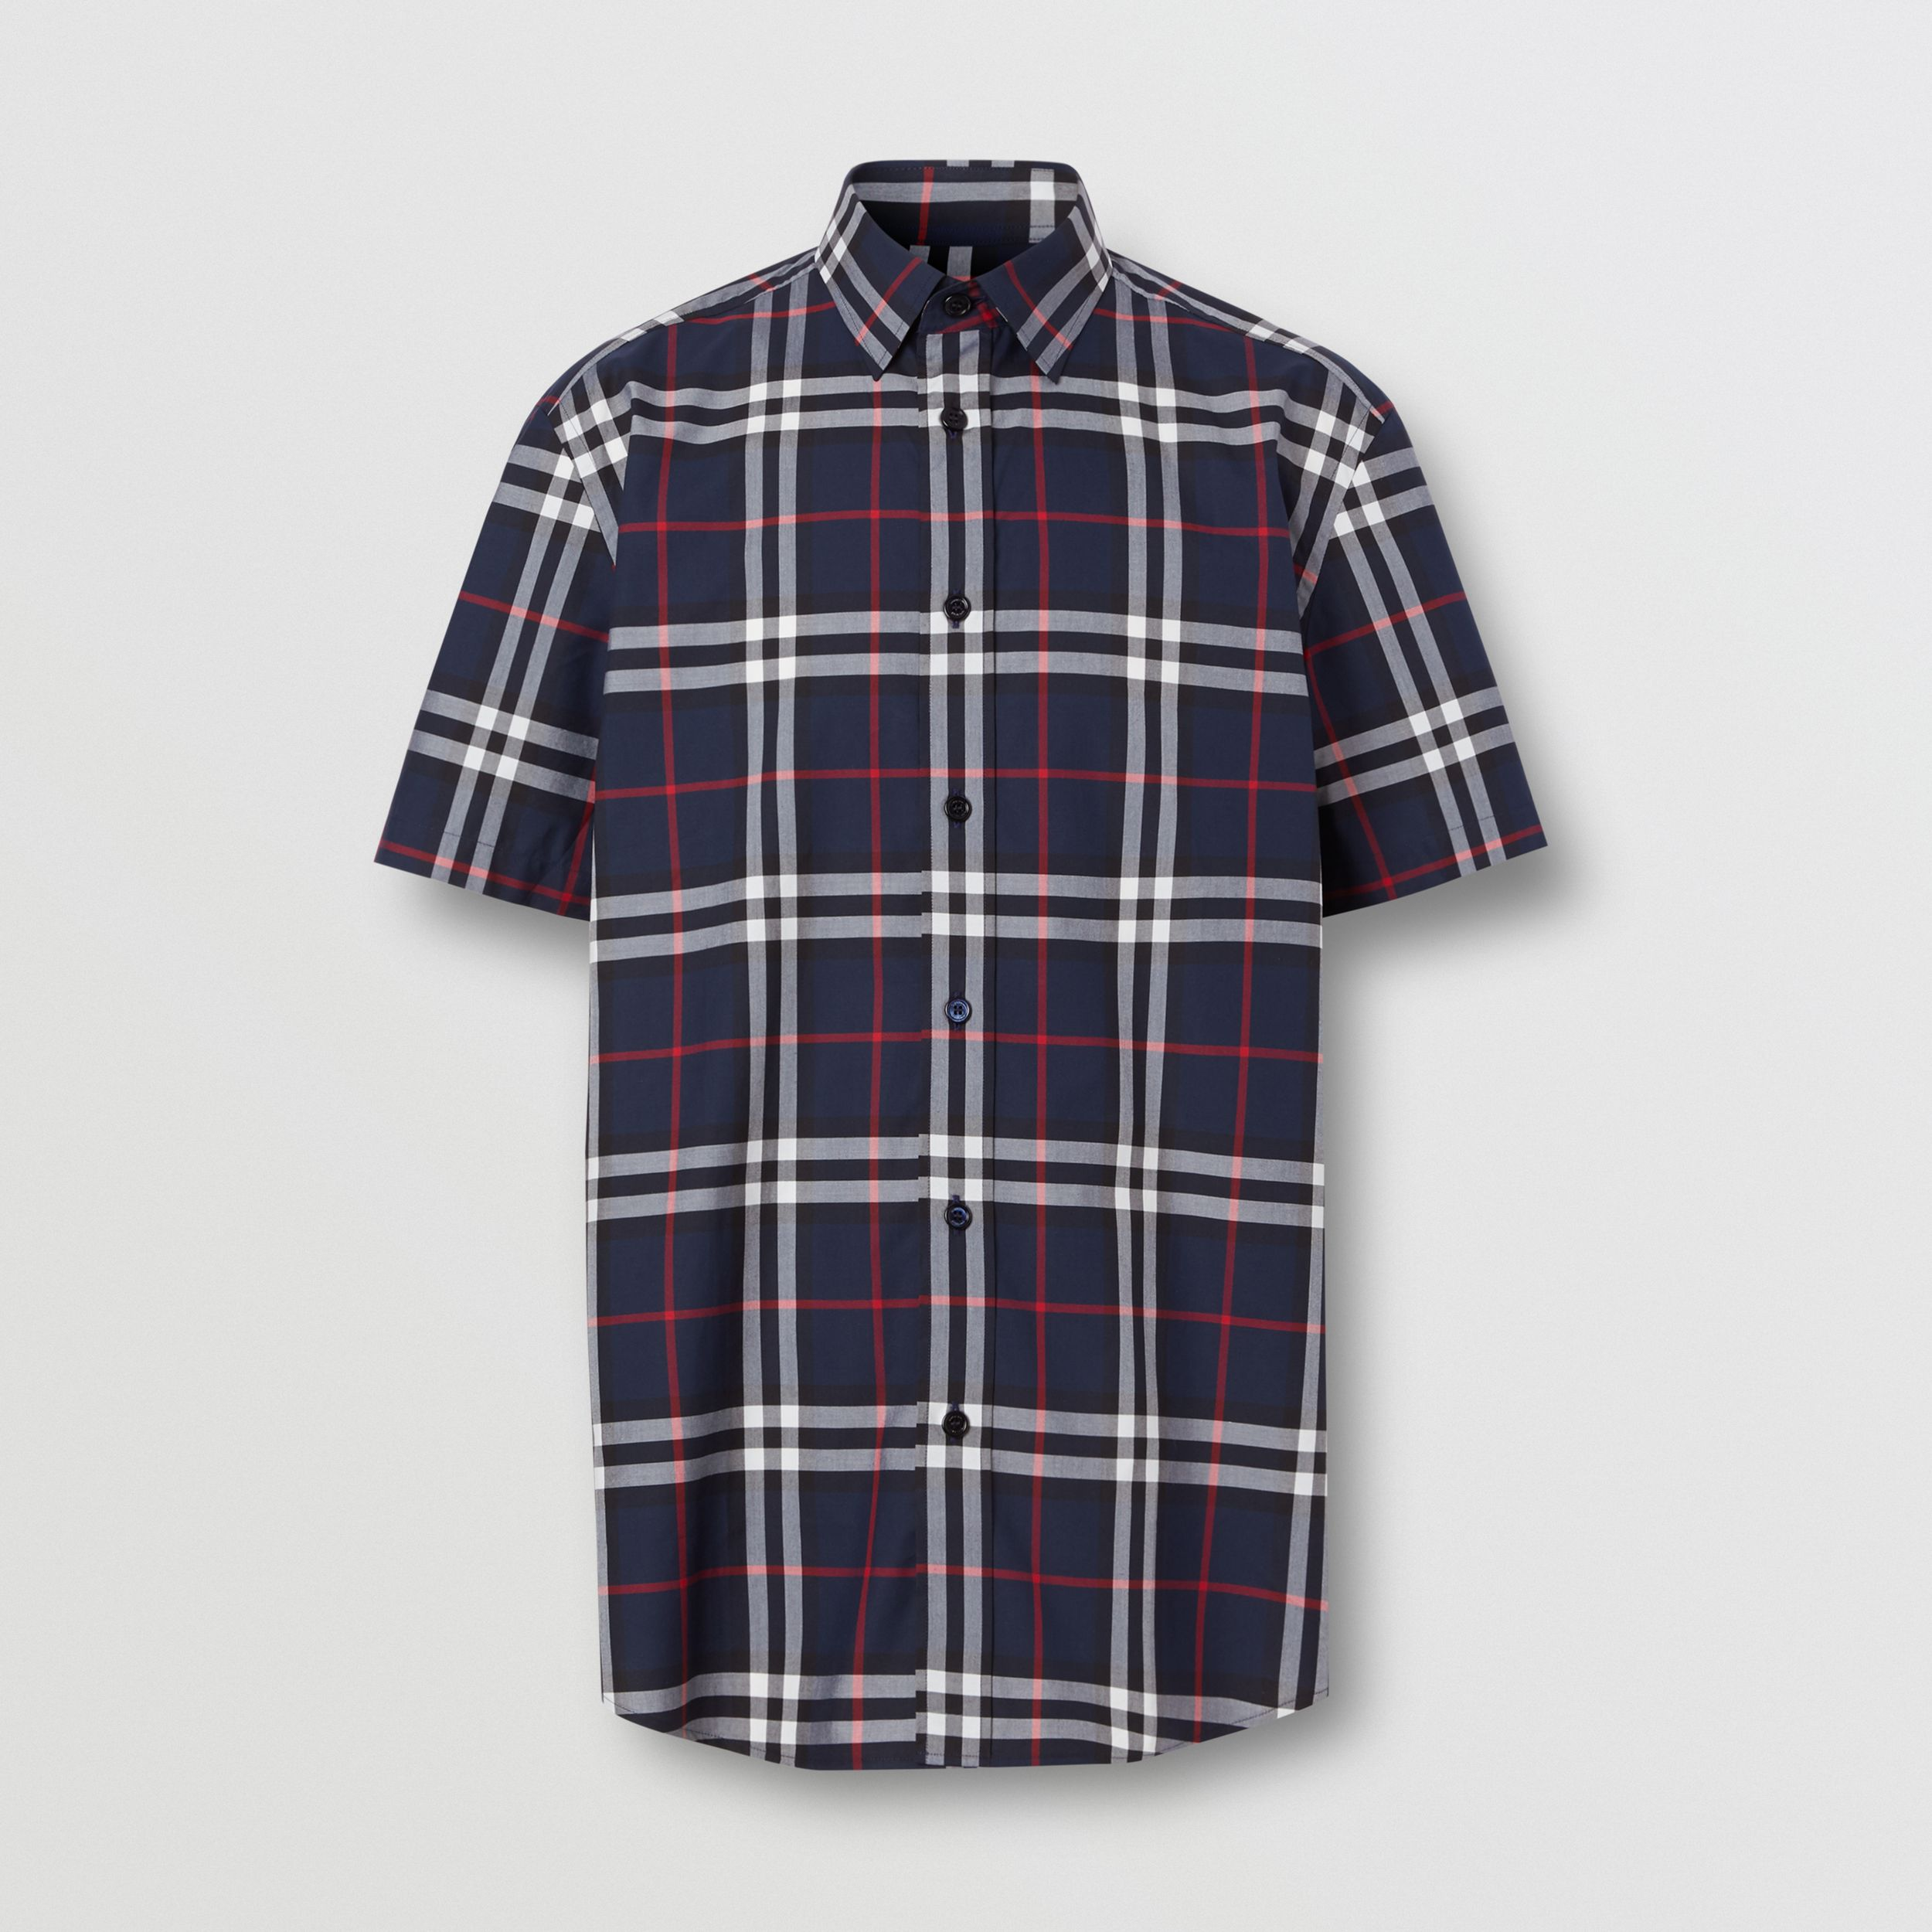 Short-sleeve Check Cotton Poplin Shirt in Navy - Men | Burberry - 4